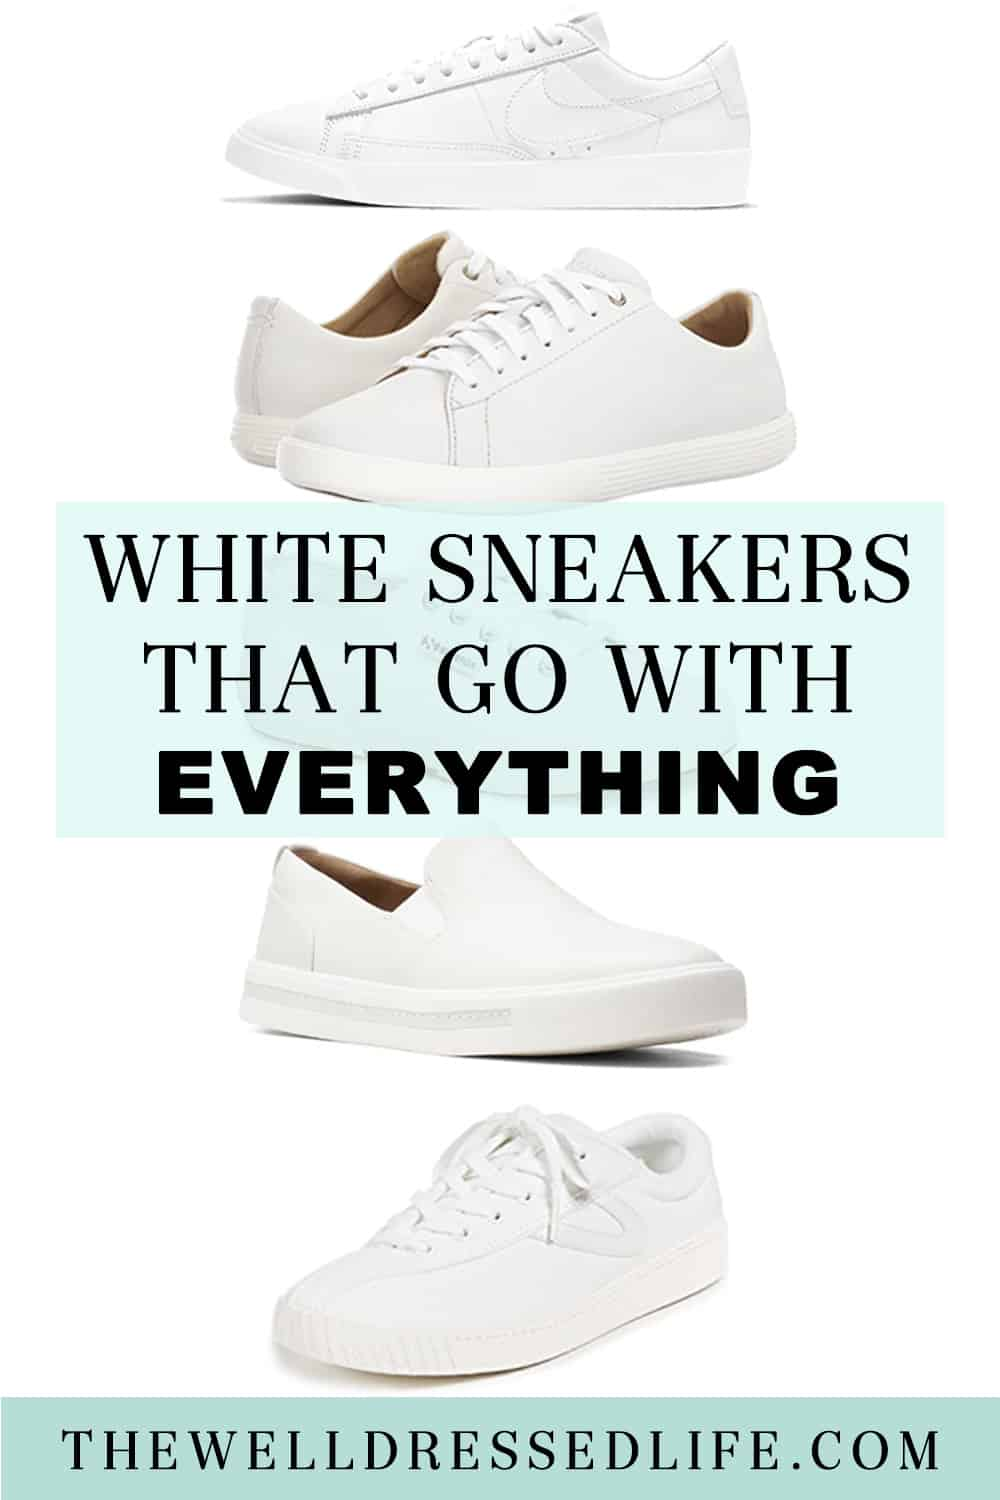 Classic White Sneakers that Go with Everything